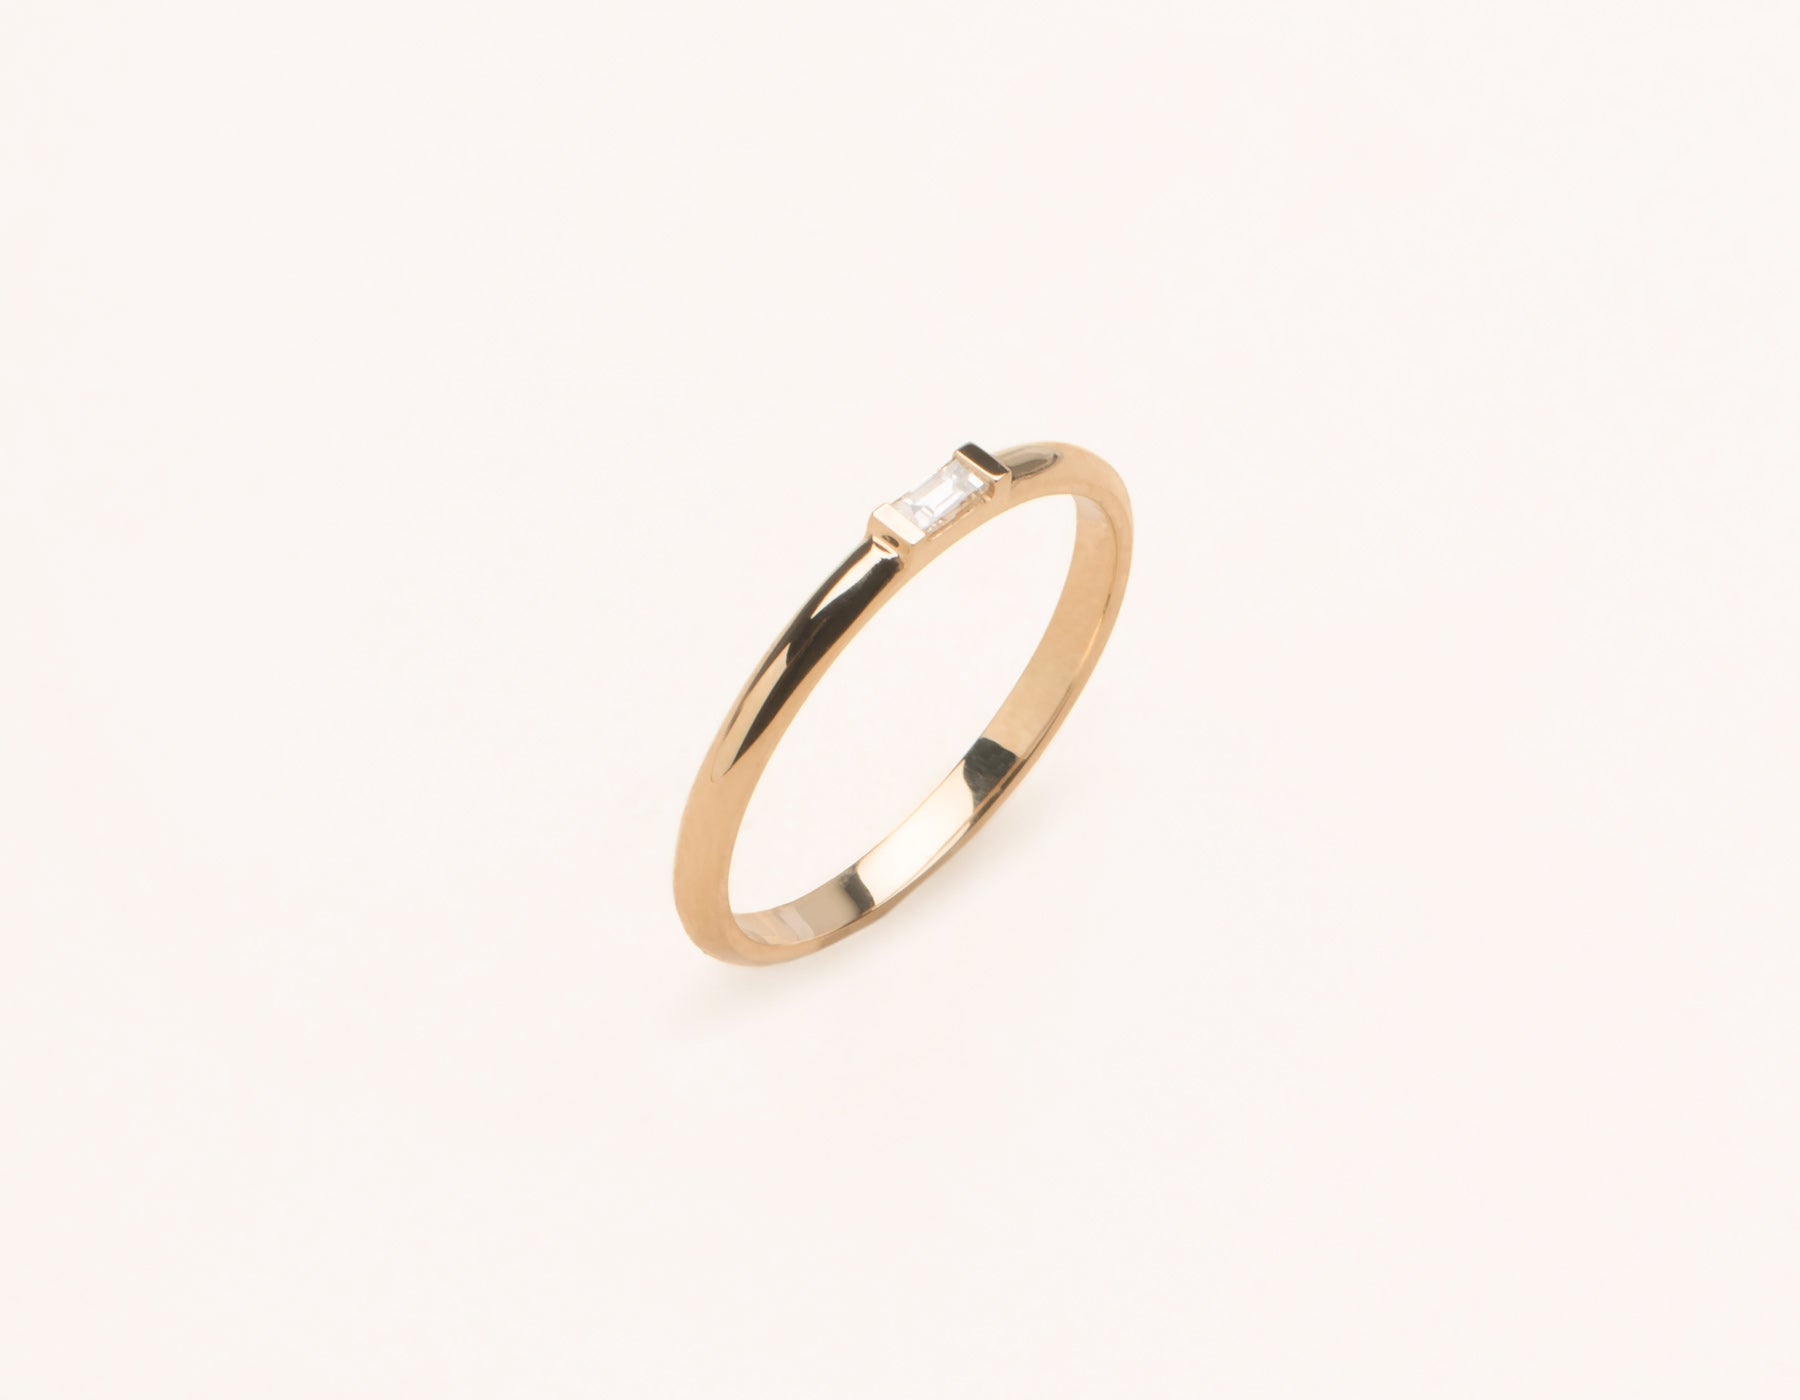 Simple stylish 14k Solid gold Baguette Diamond Ring with streamlined channel setting by Vrai & Oro, 14K Rose Gold